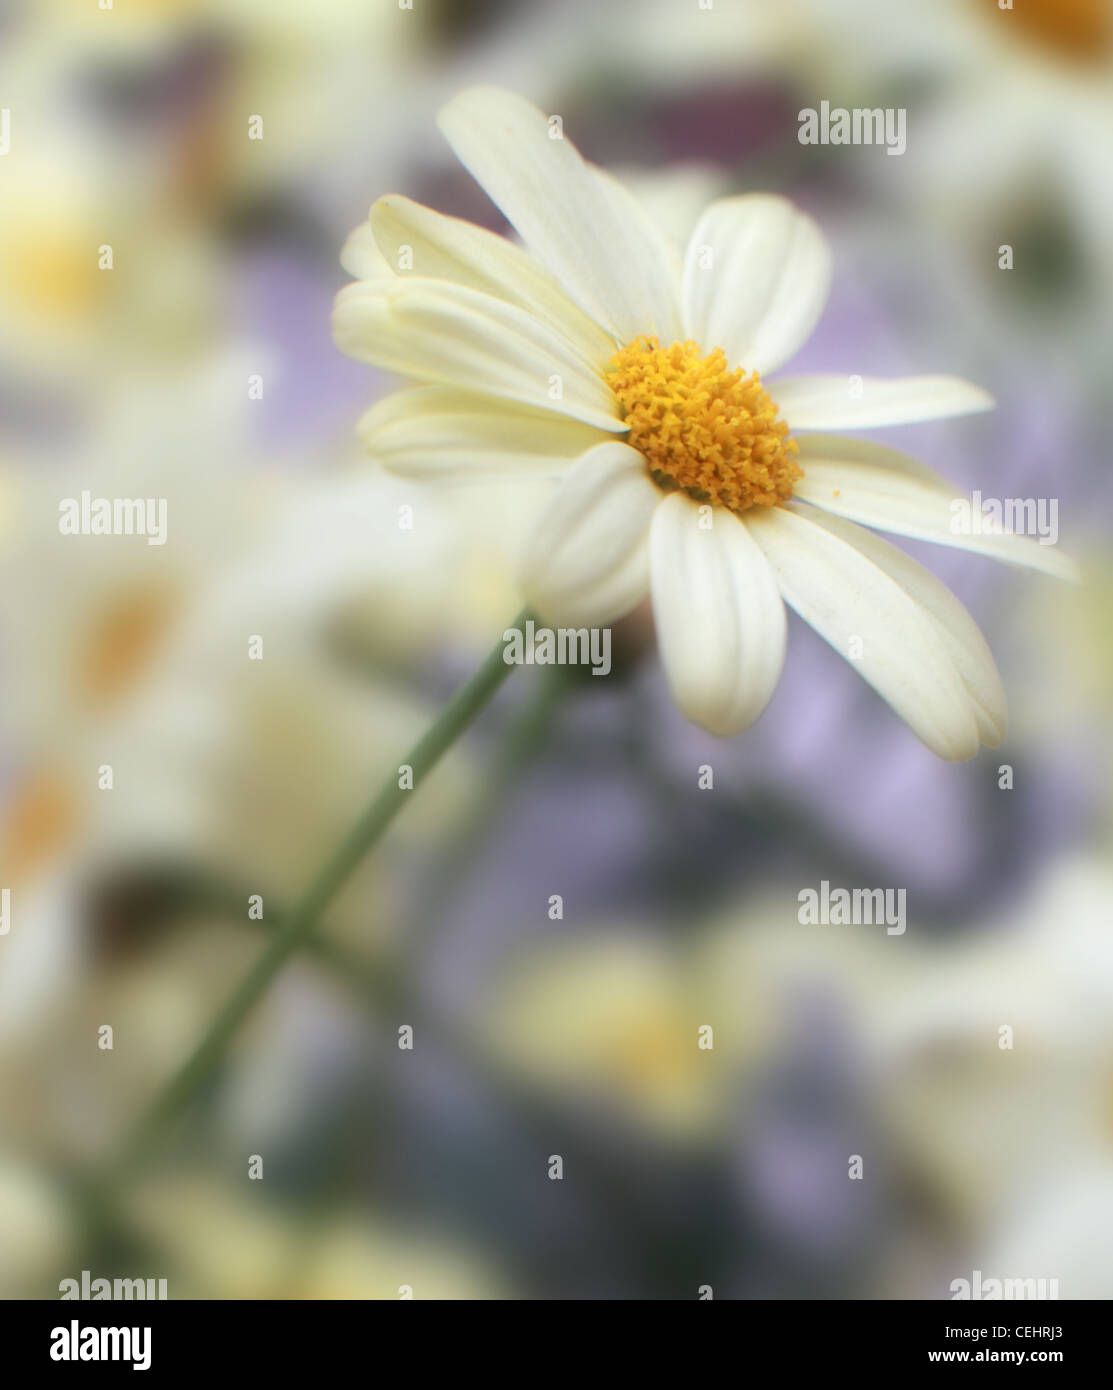 Summer English Daisy Marguerite Flower white and yellow on a blurred dreamy background - Stock Image